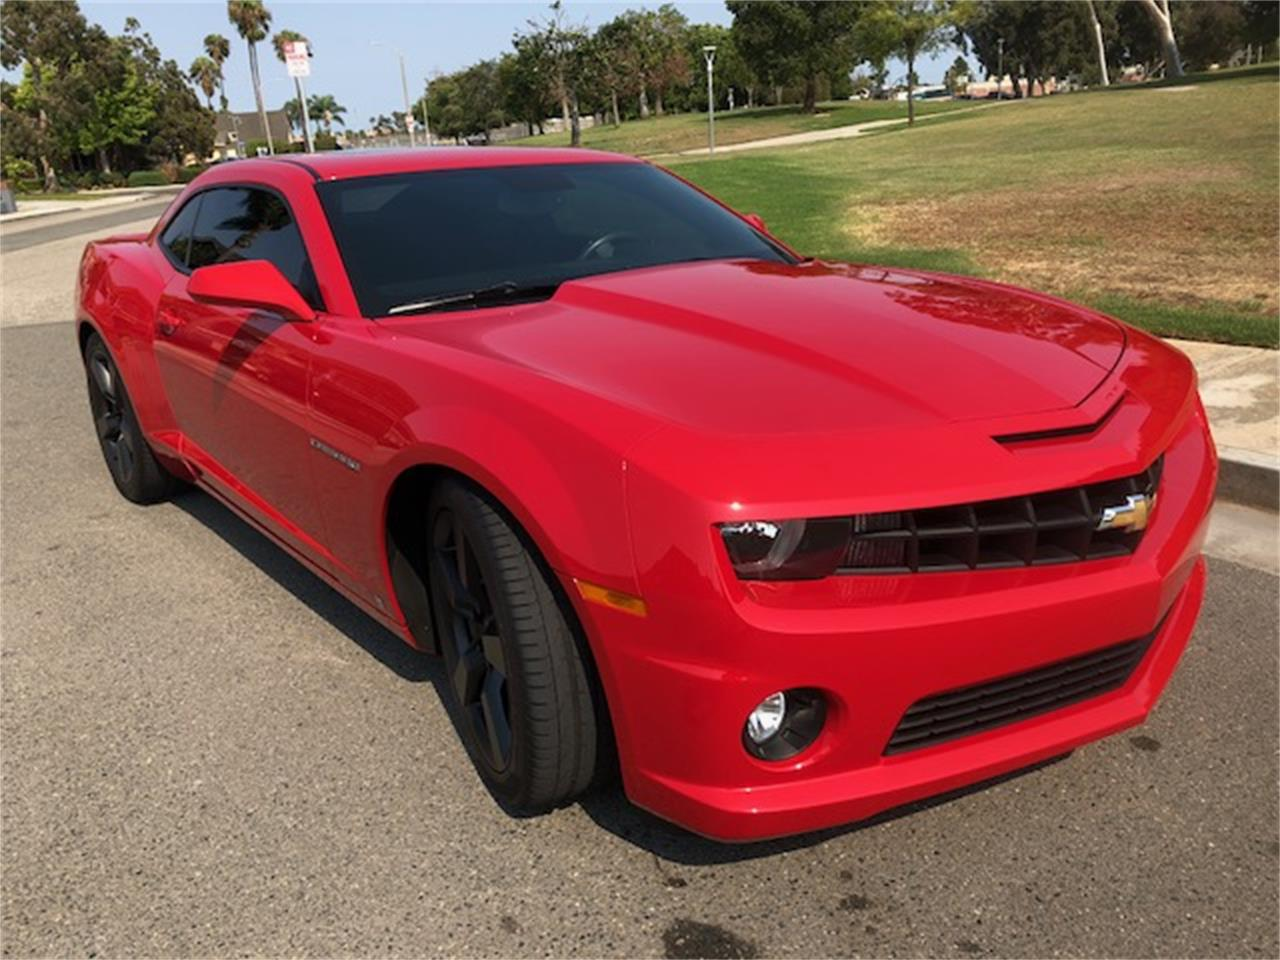 2010 Chevrolet Camaro SS (CC-1039307) for sale in Bullhead City, Arizona